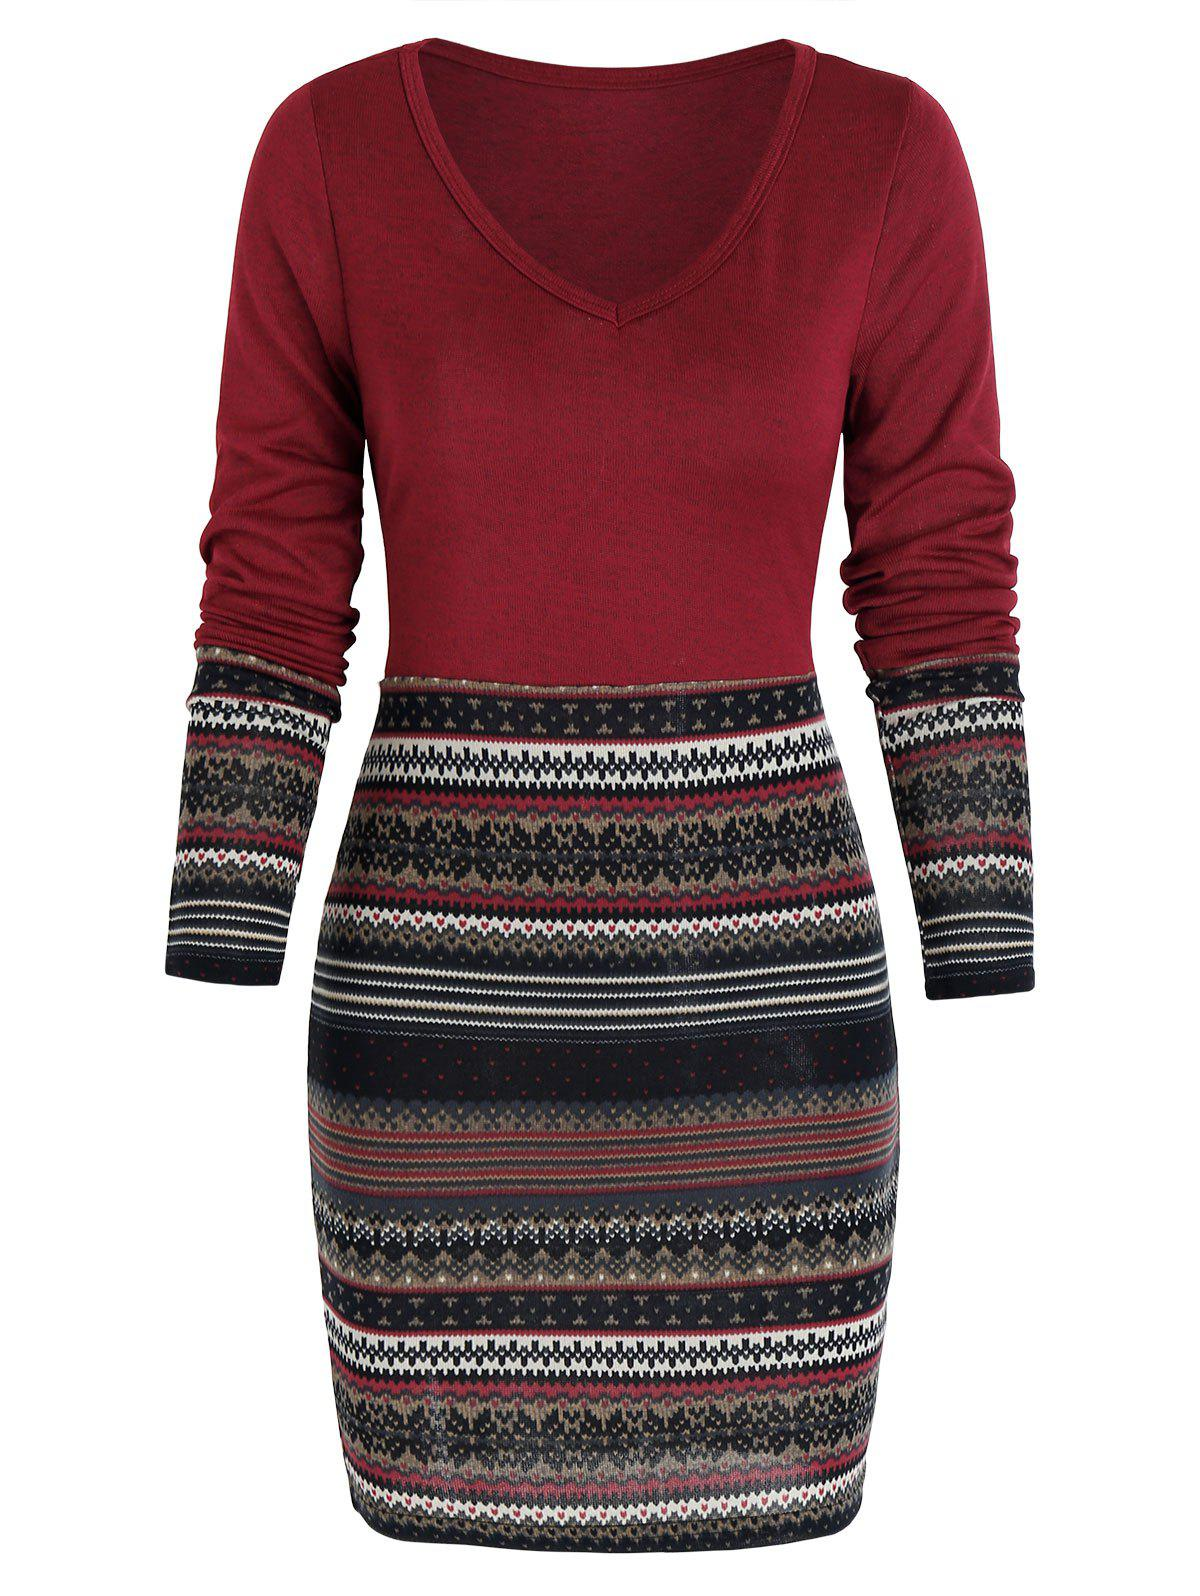 Tribal Print Mini Bodycon Dress - RED WINE M